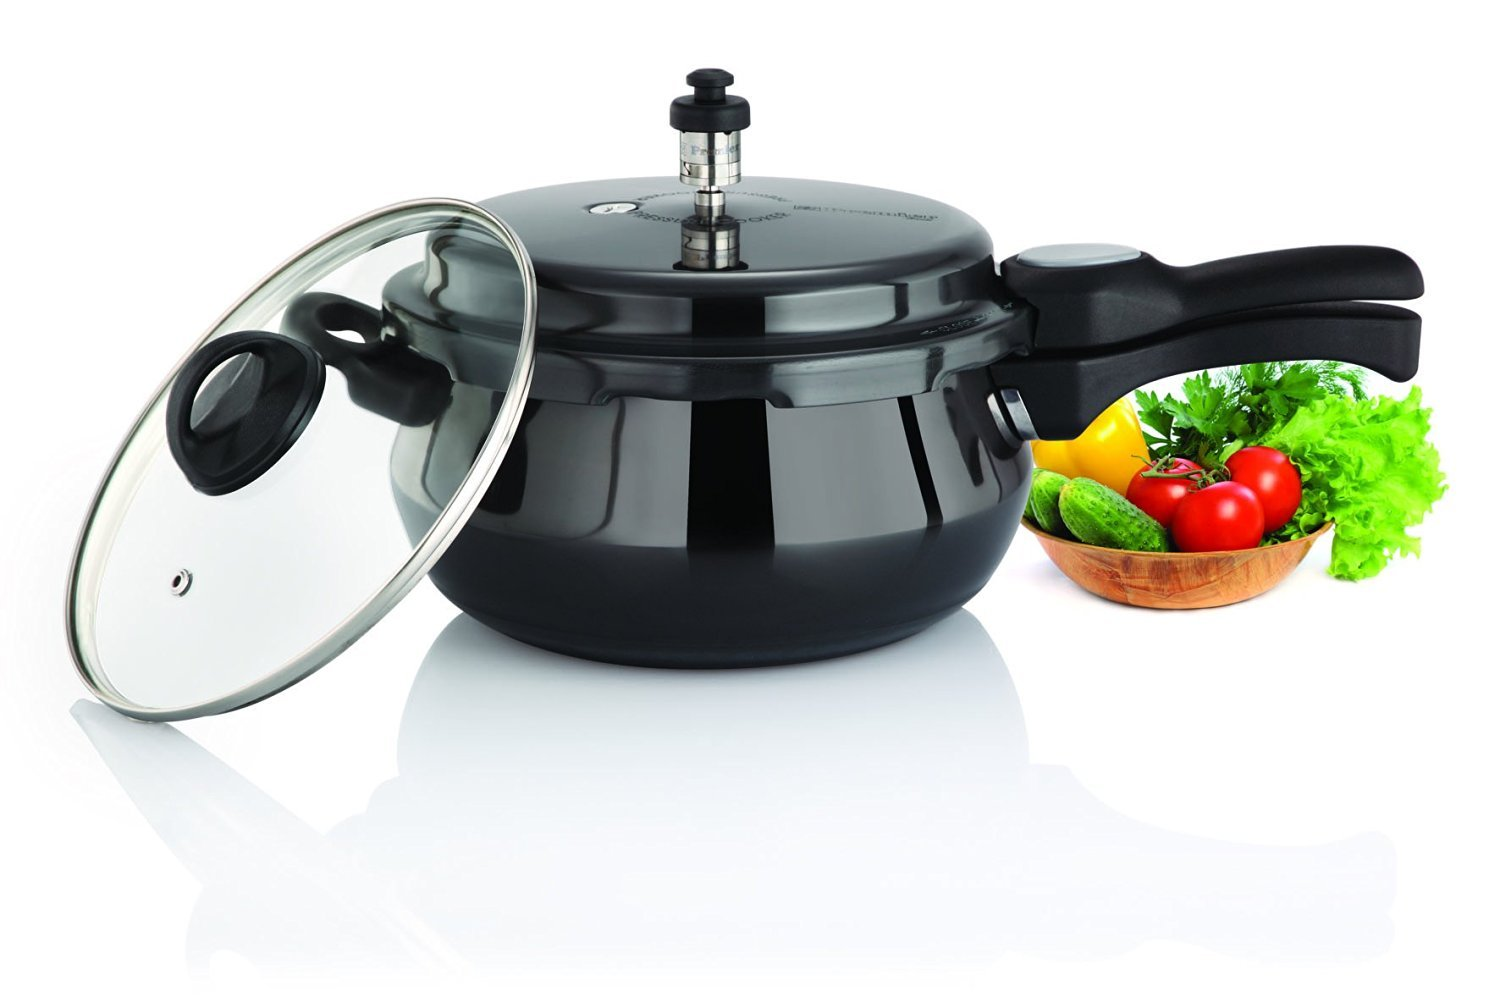 Premier Cucina Trendy Black 3 Litre Handi Pressure Cooker with FREE GLASS LID